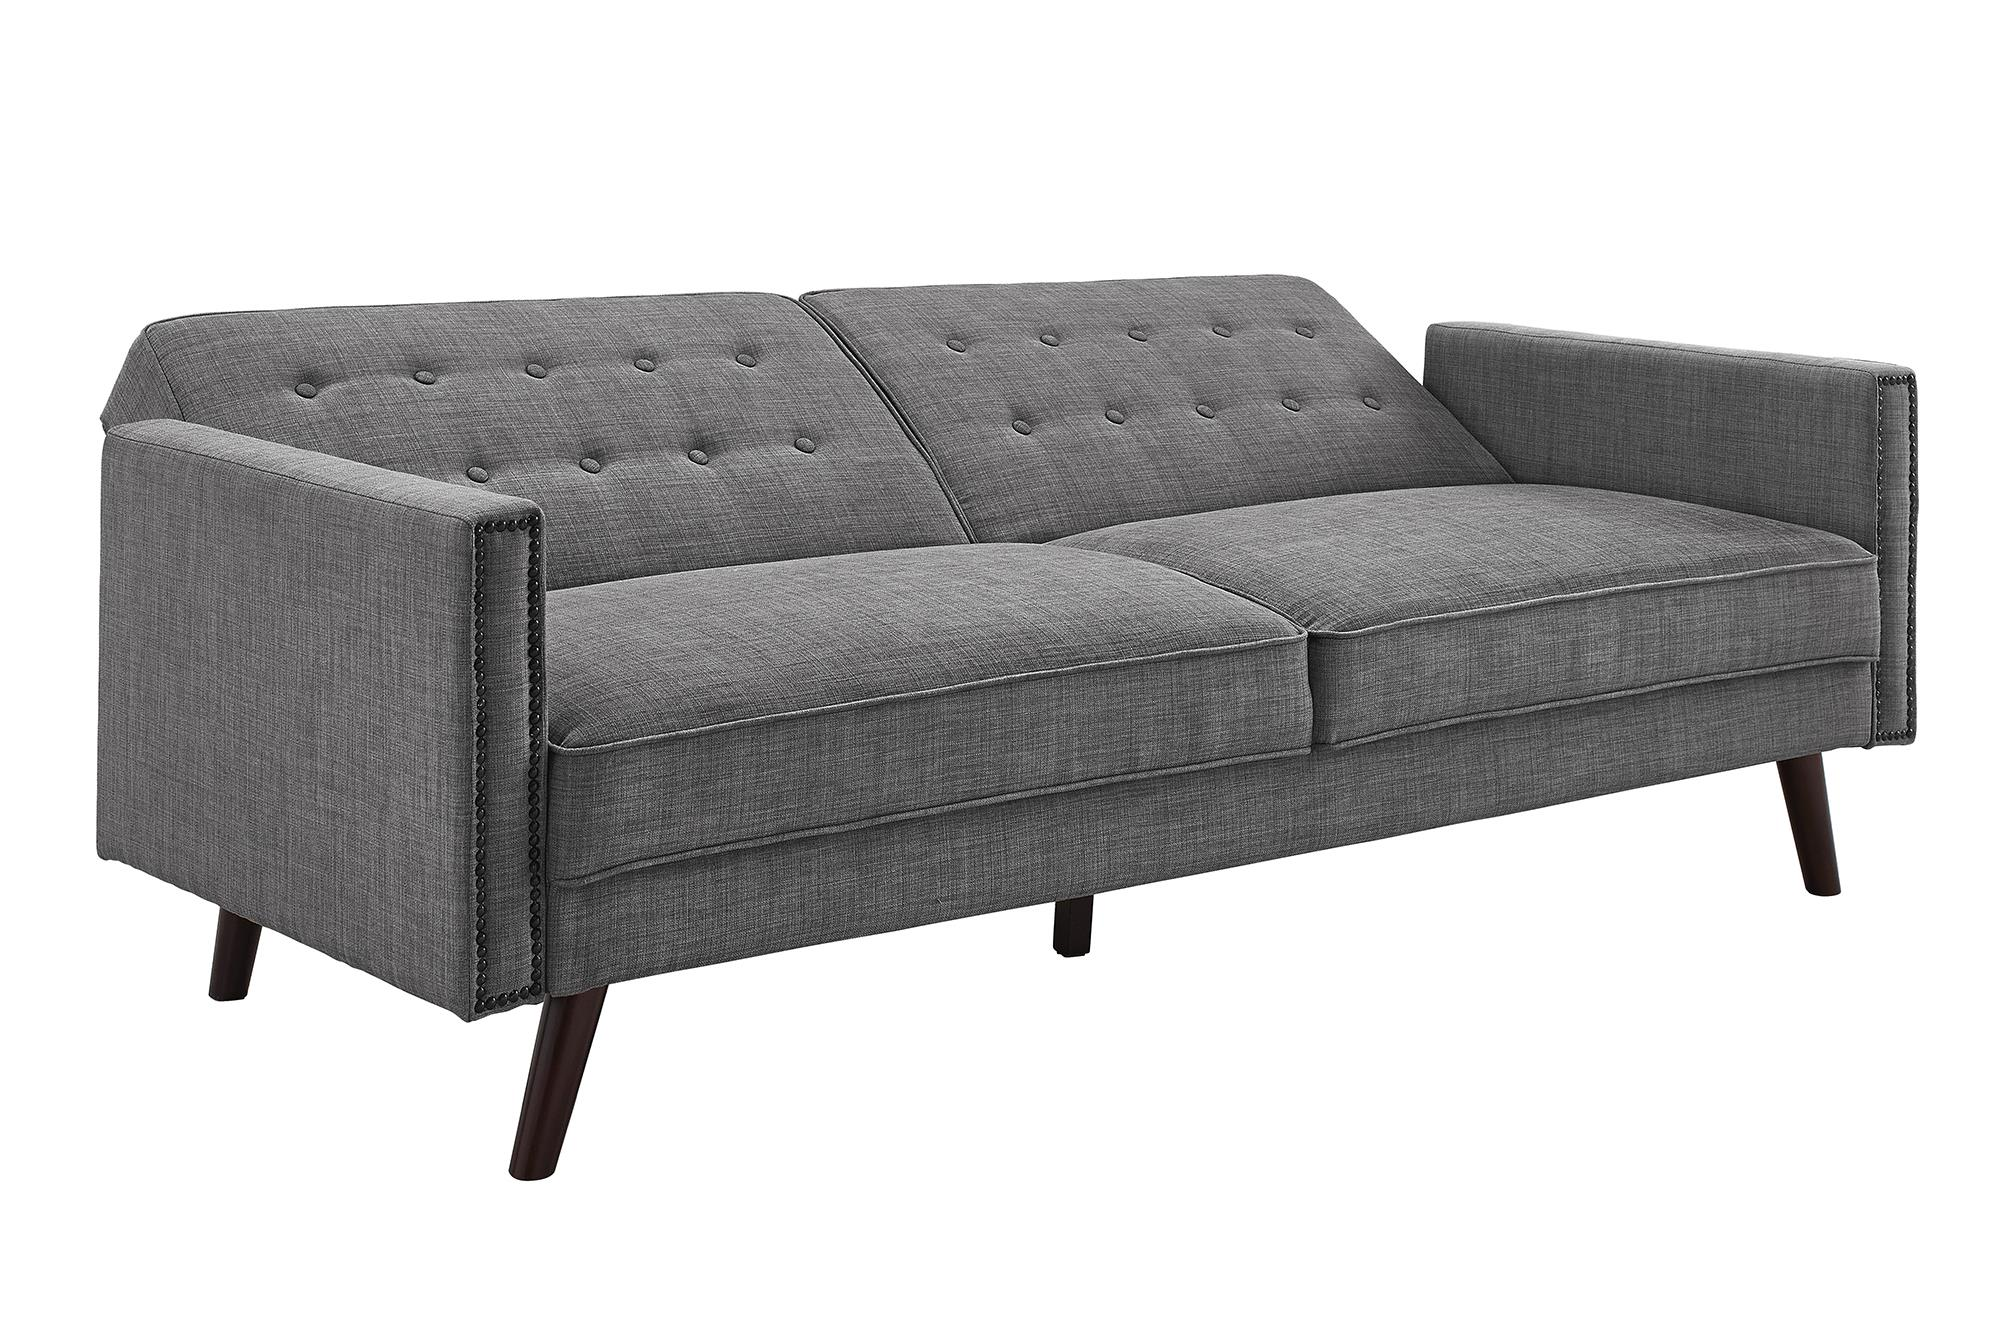 Better Homes and Gardens Rowan Linen Futon Sofa, Grey by Dorel Home Products